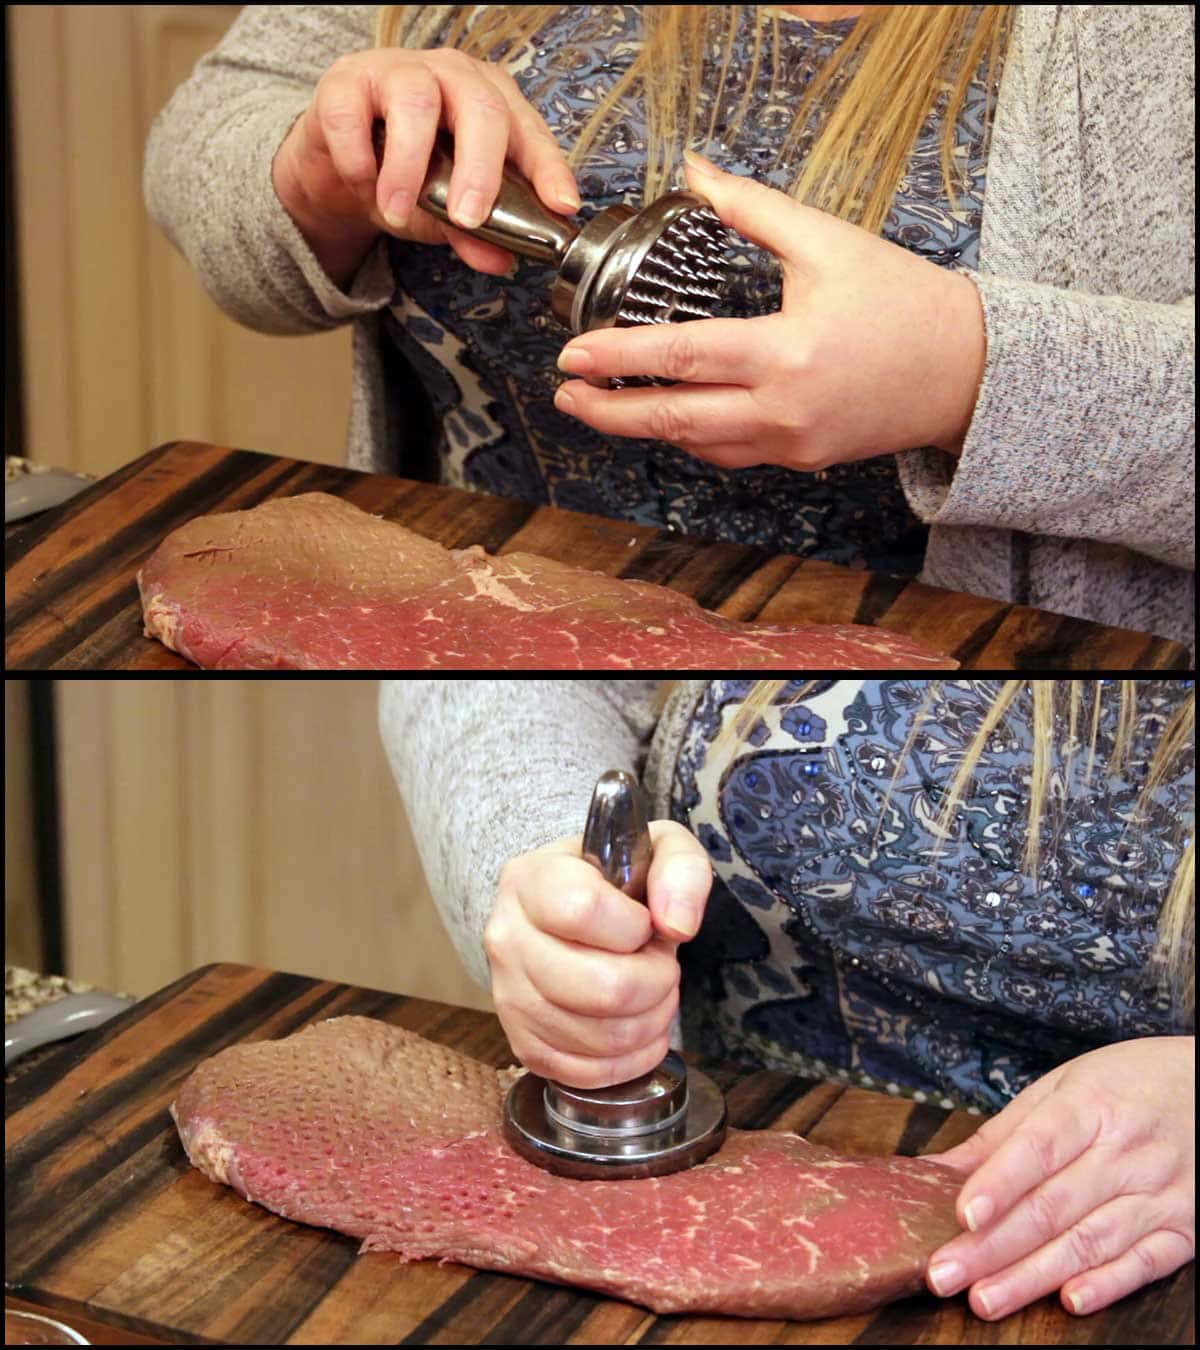 Tenderizing the london broil